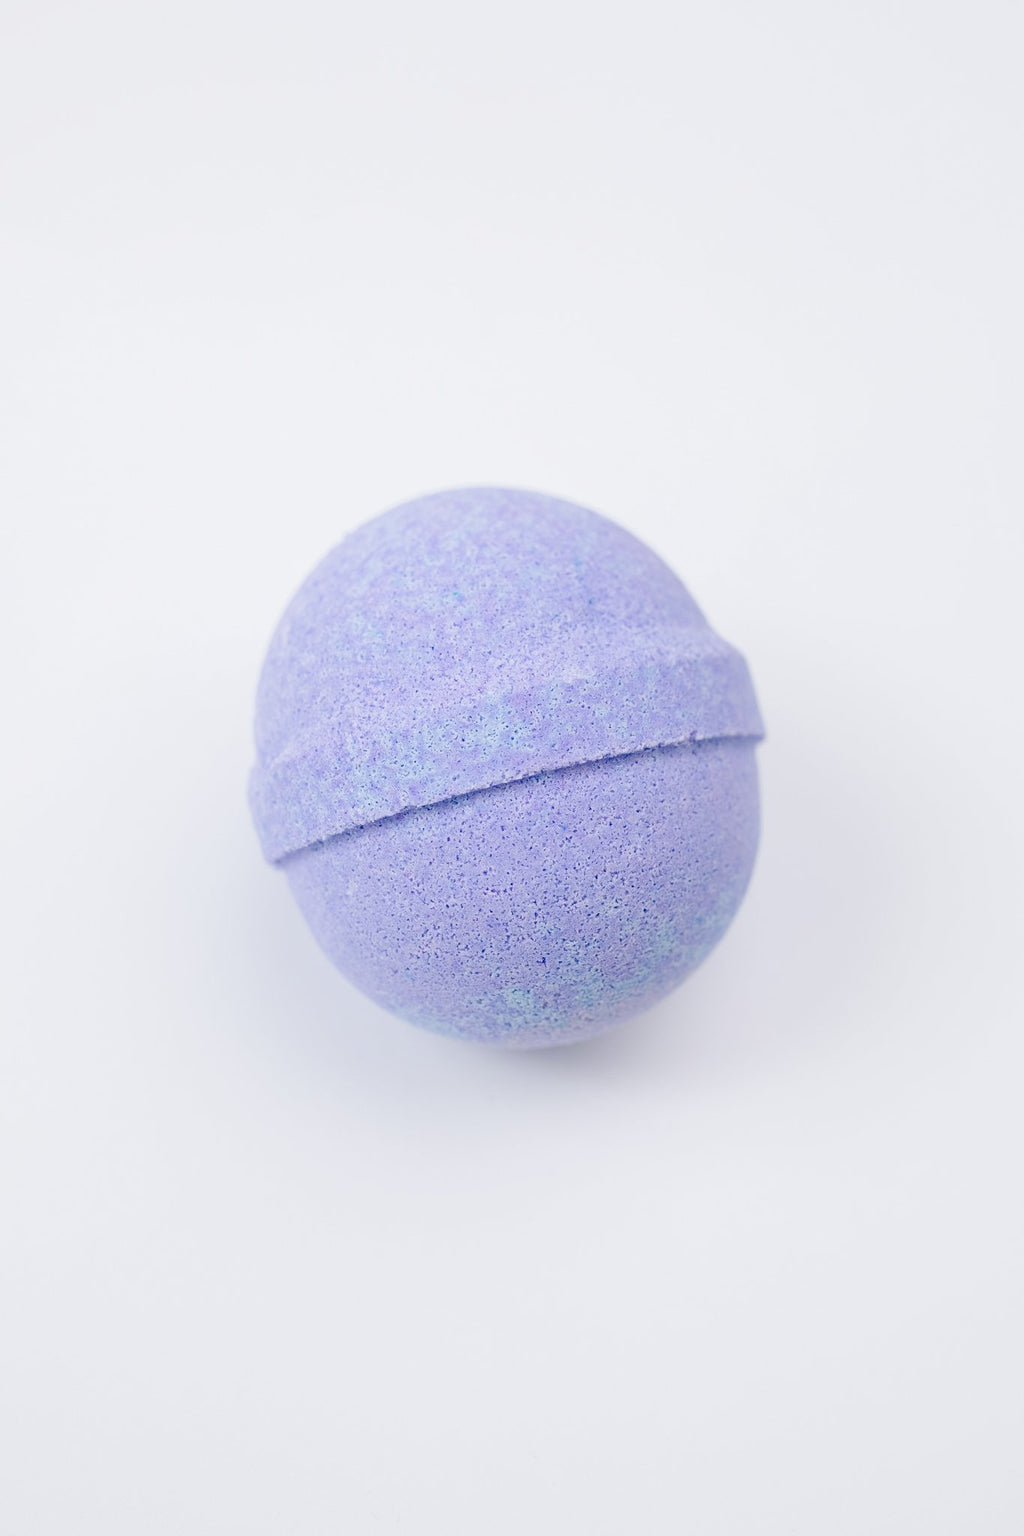 Cottage Garden Bath Bombs in Sugar Plum Fairy-11-19-2020, Accessories, BFCM2020, Group A, Group B, Group C, Holiday Gifts-Womens Artisan USA American Made Clothing Accessories